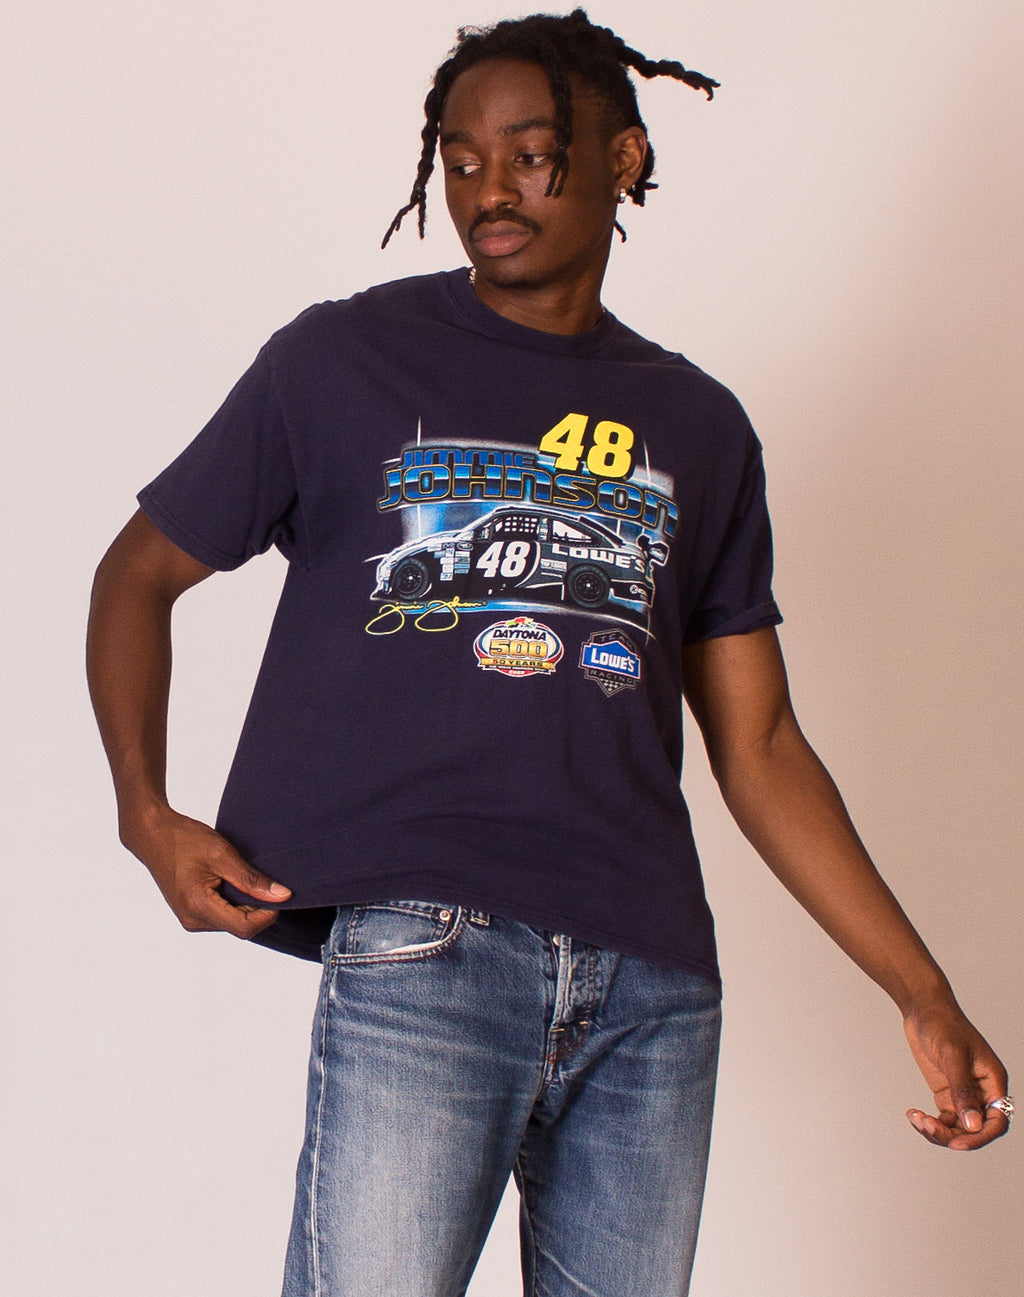 NASCAR JIMMIE JOHNSON RACING T SHIRT